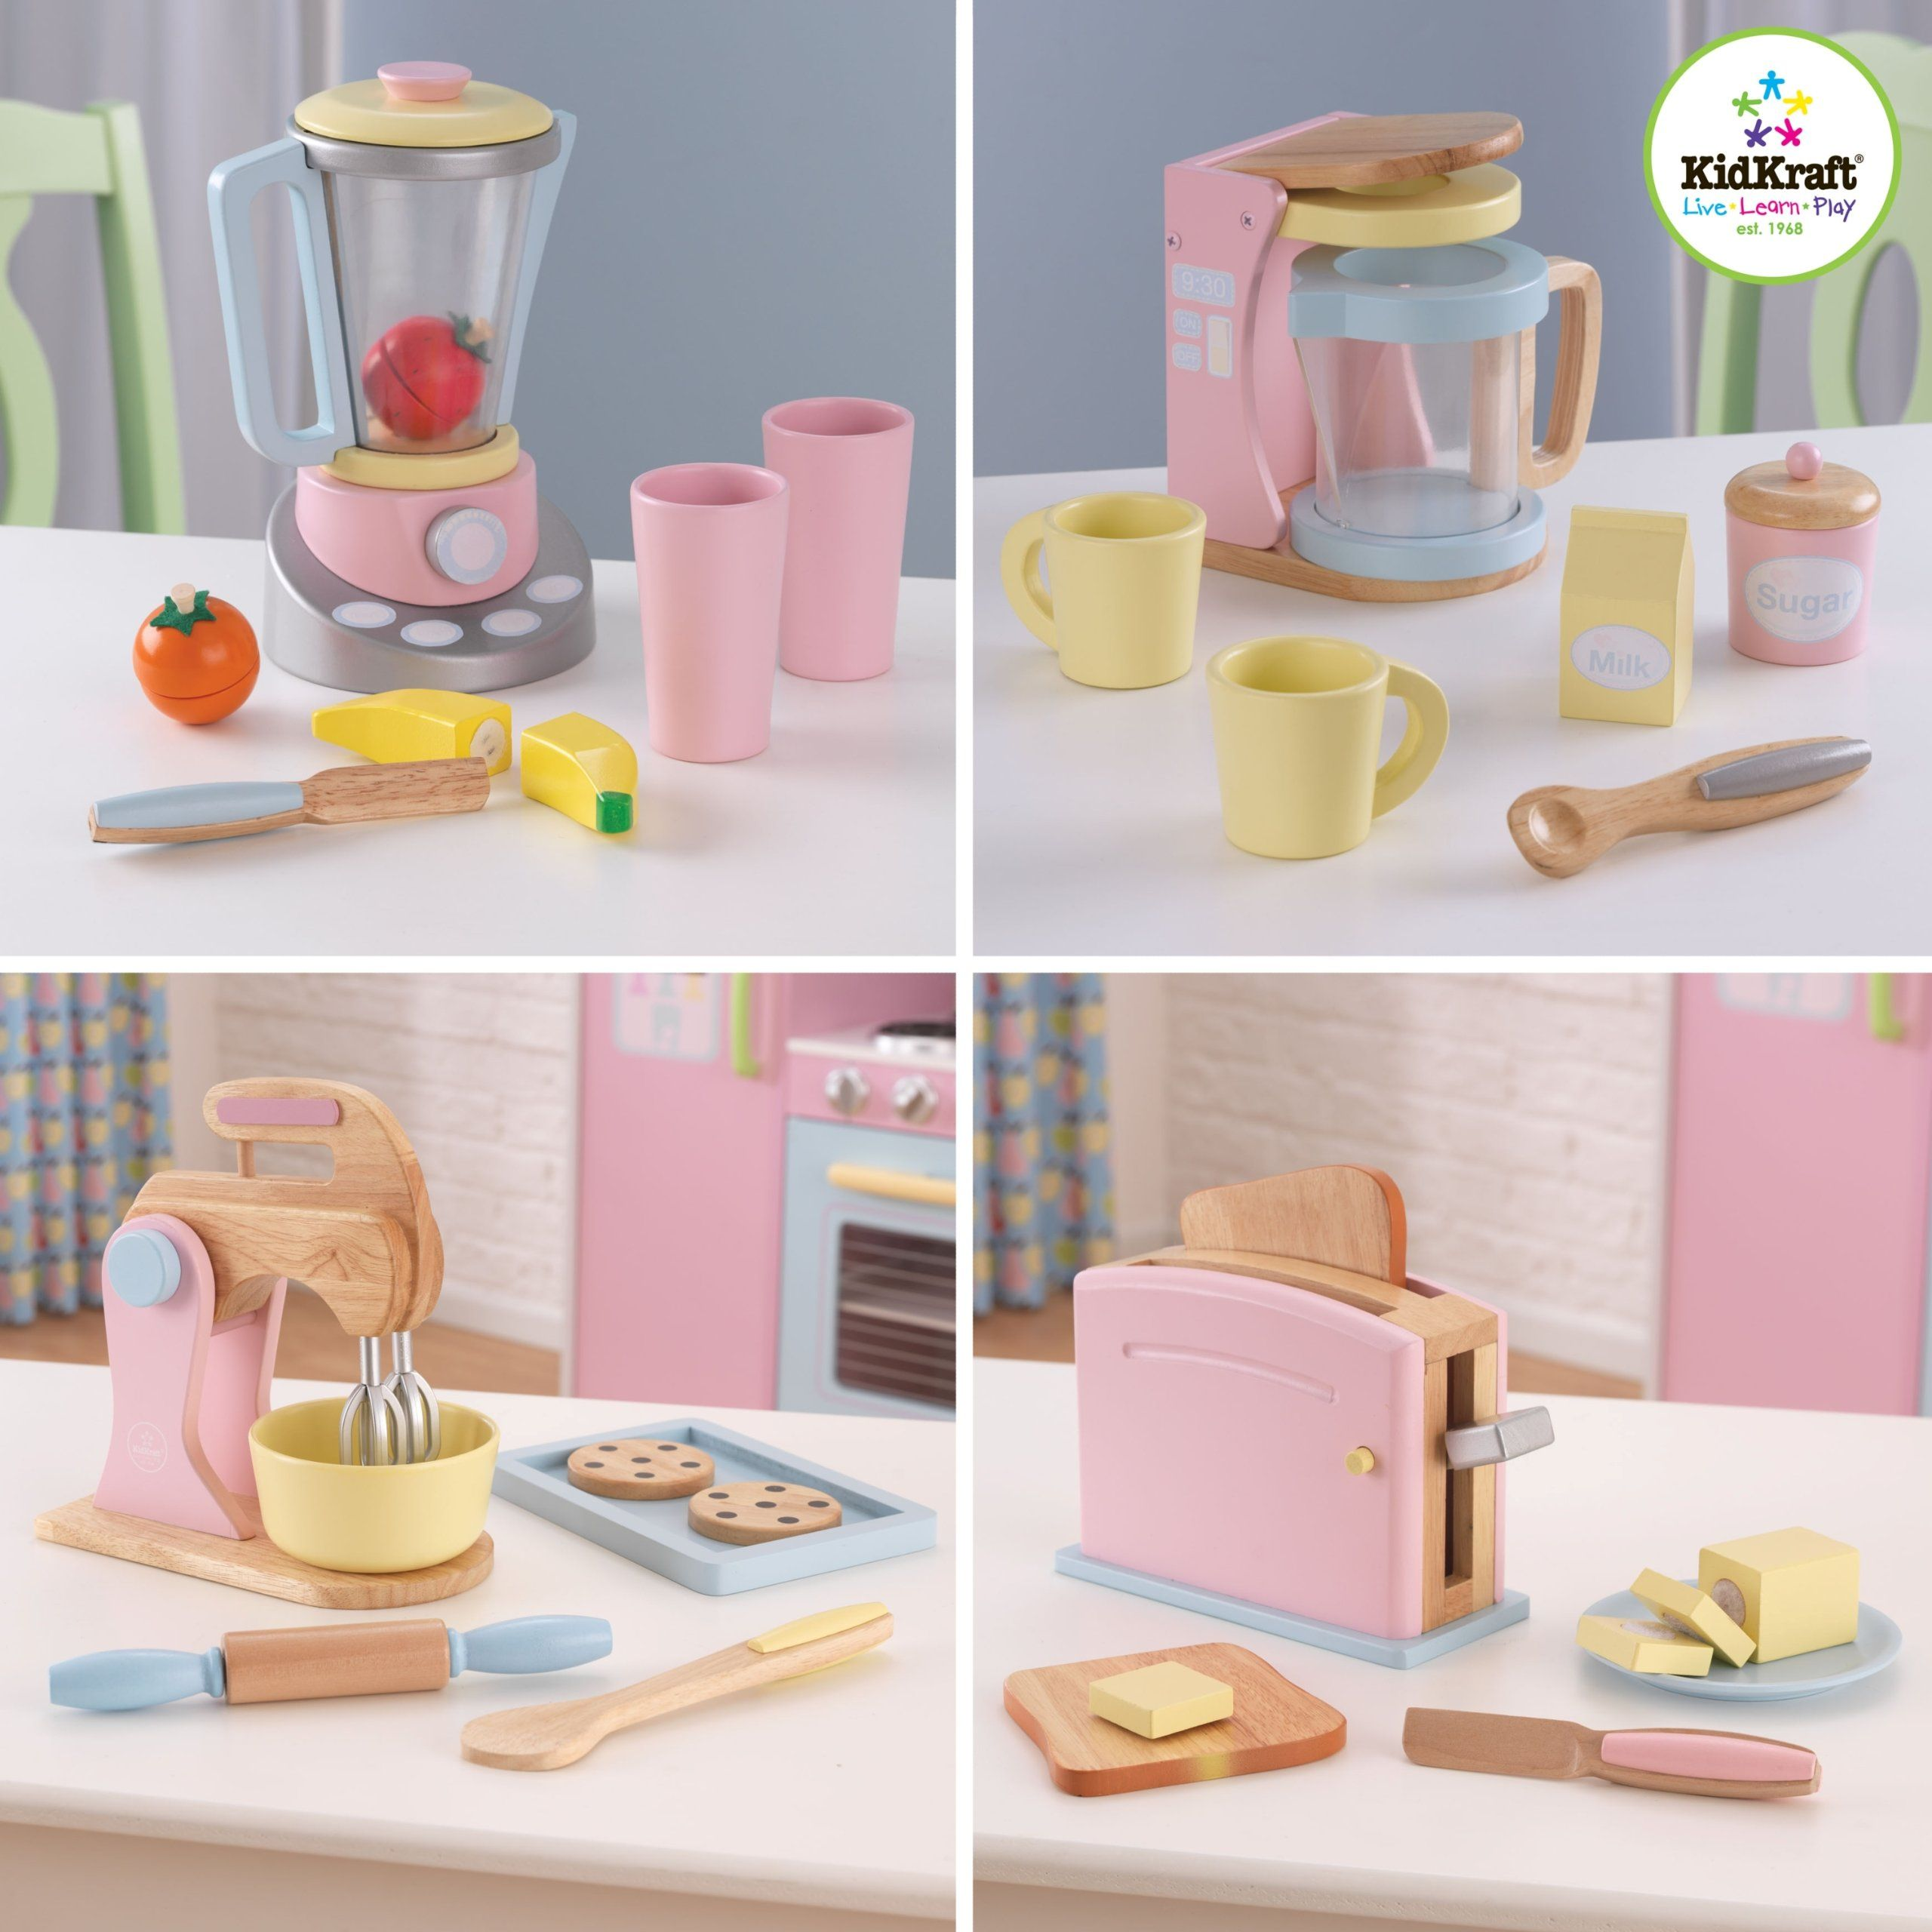 Toys for kids kitchen set  Kidkraft  Kitchen Pastel Wooden Play Food Set  Pack  Christmas